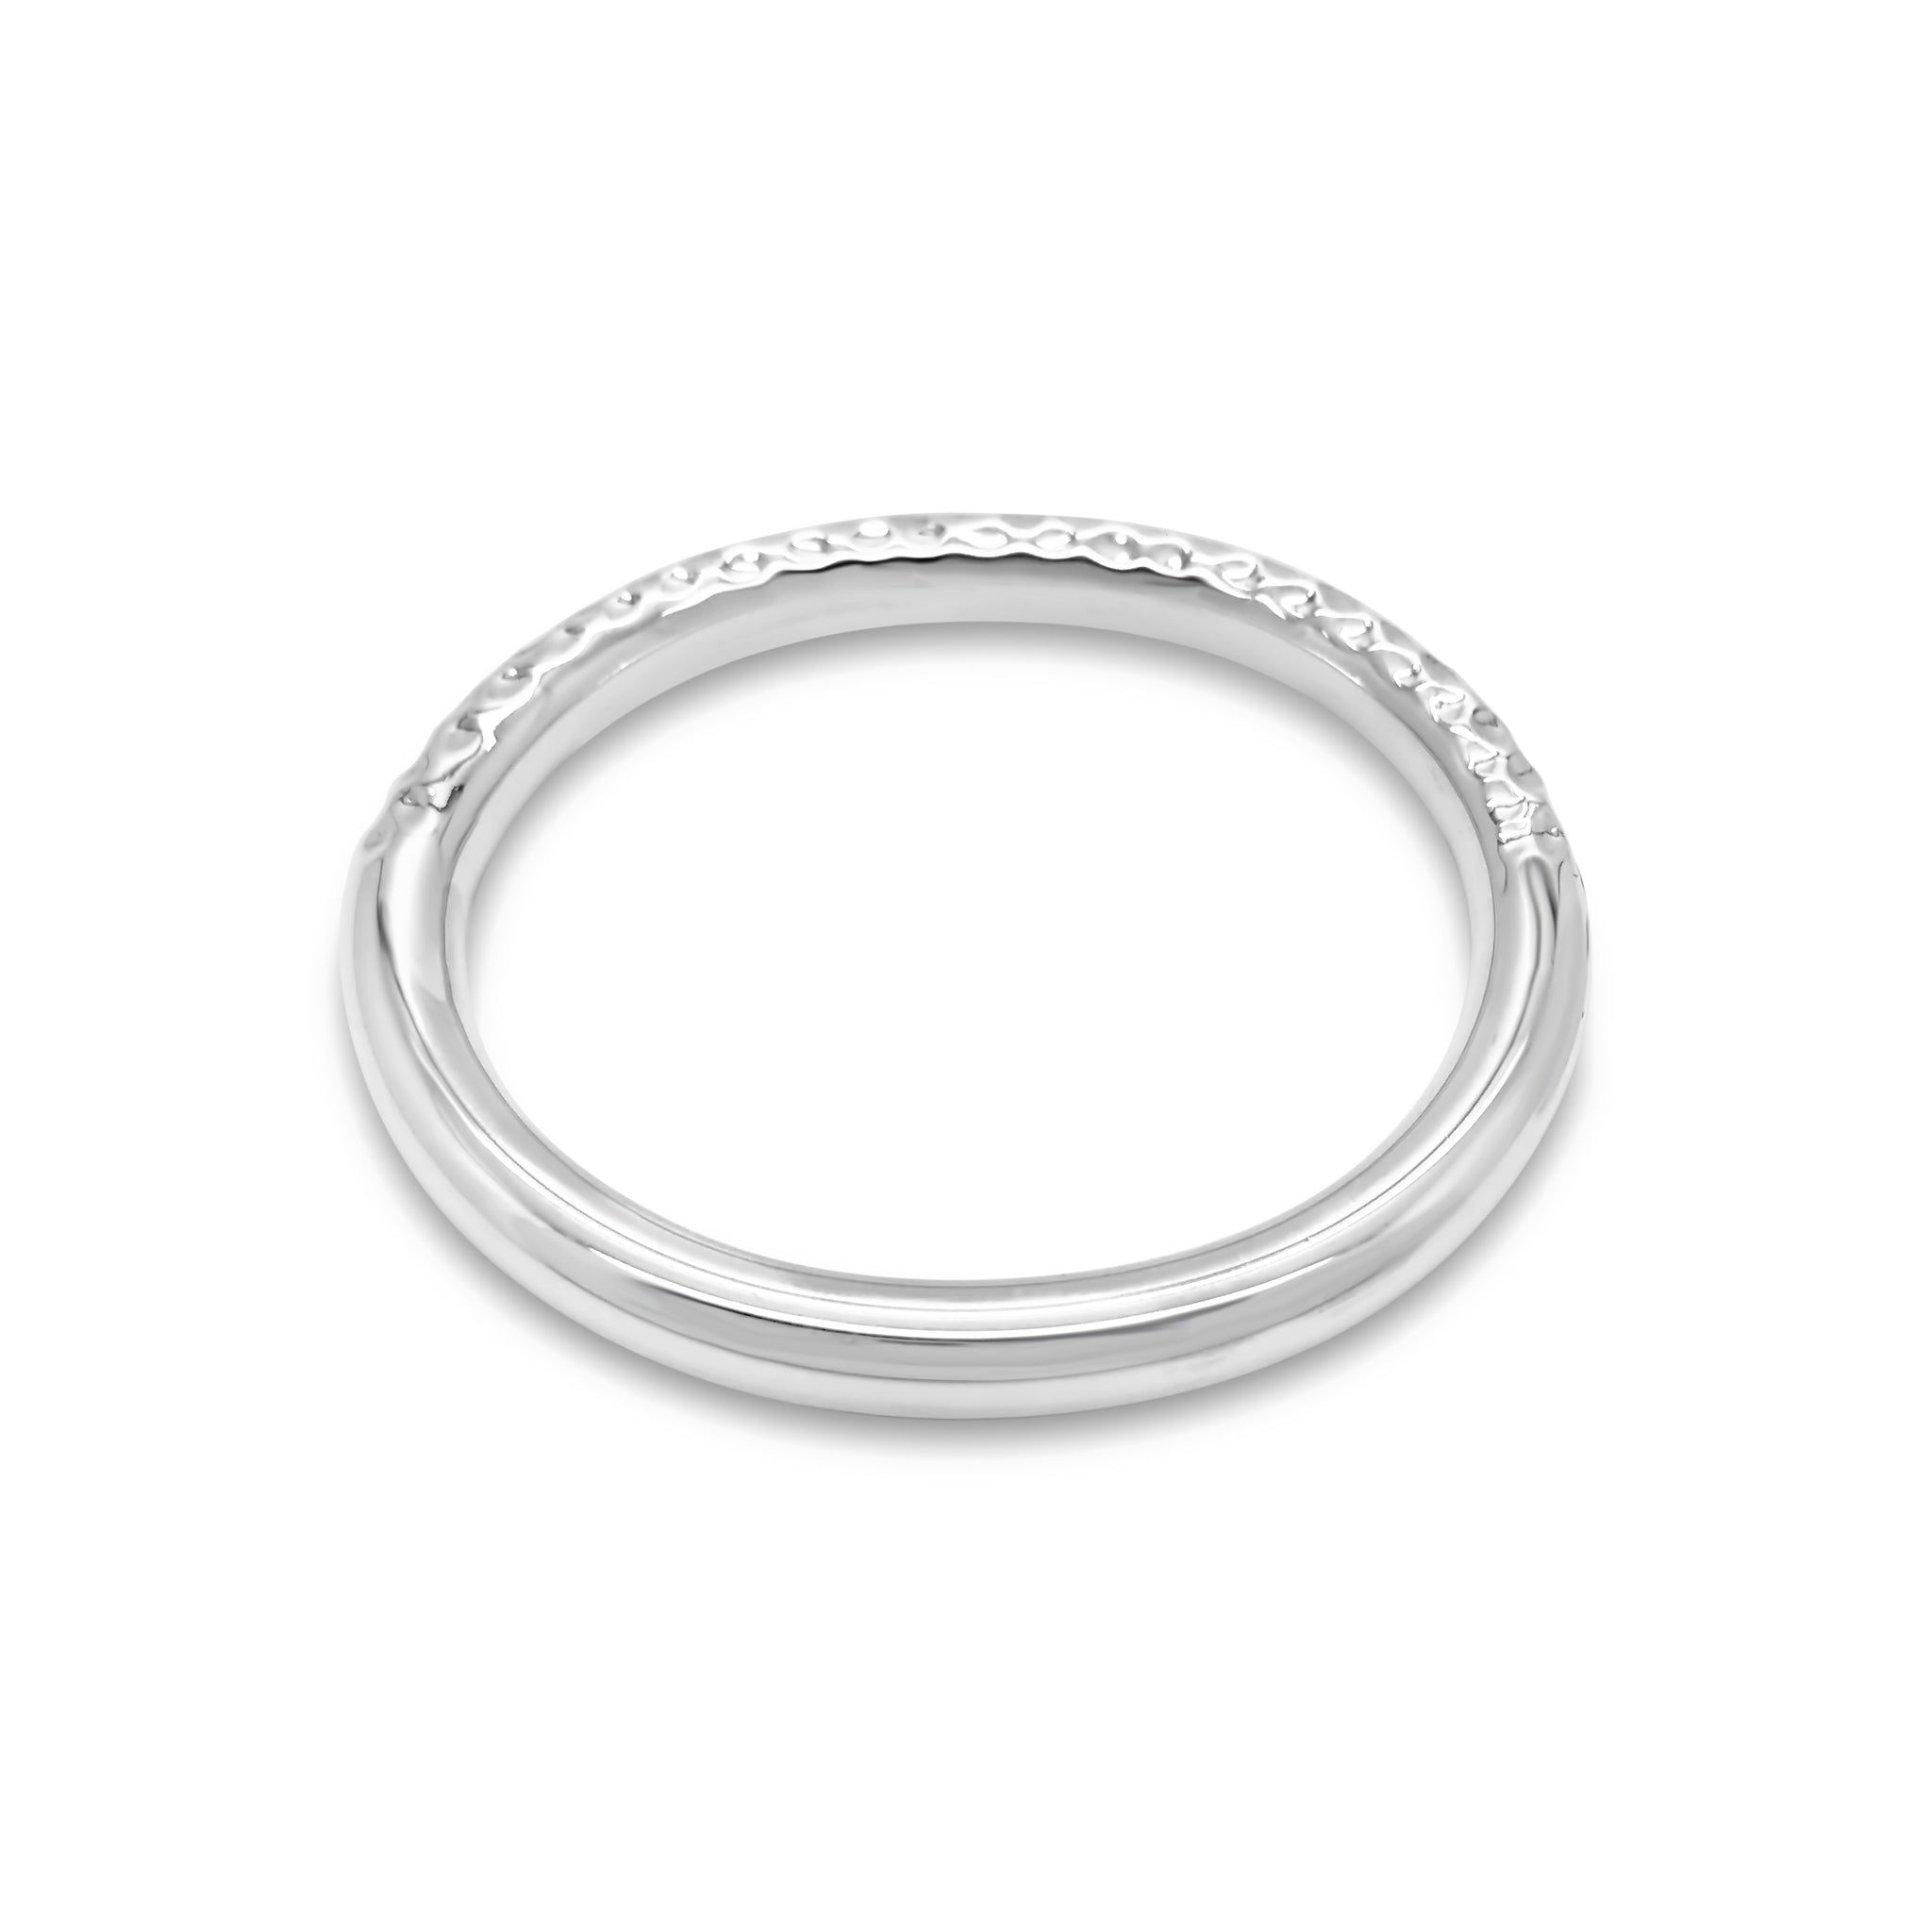 OVAL COMBINATION GOLF BANGLE